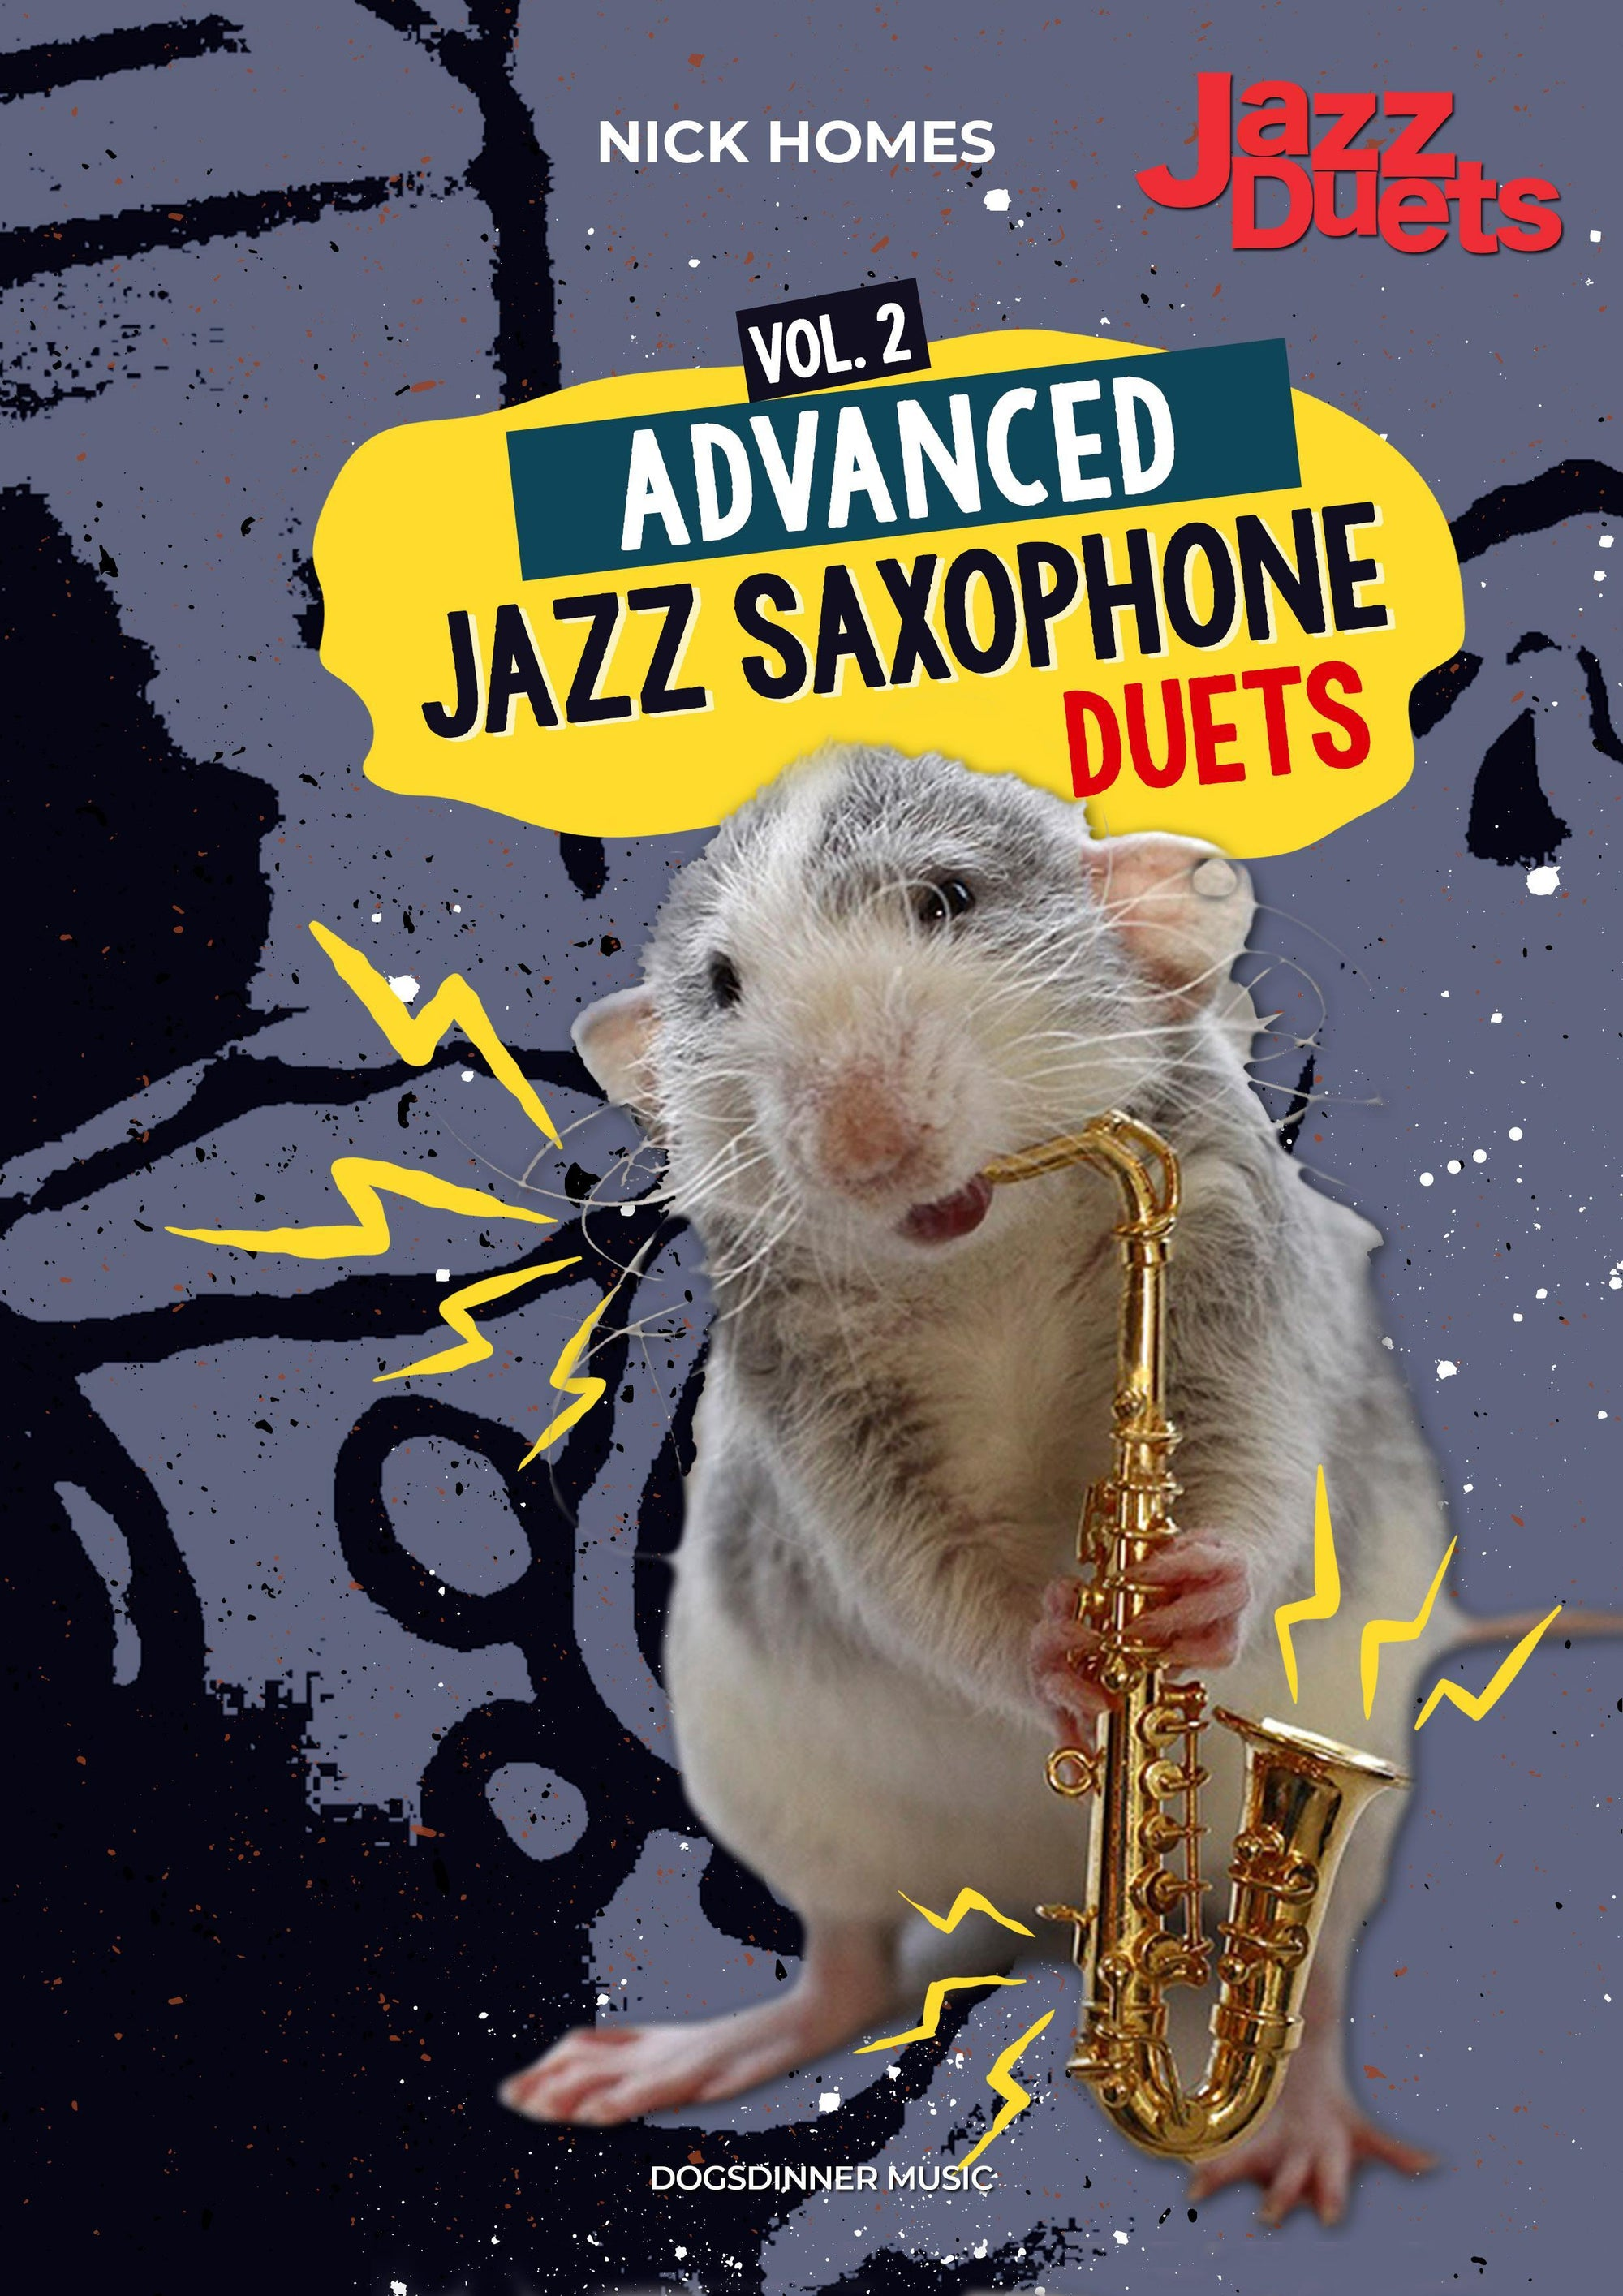 Advanced Saxophone Jazz duets vol 2